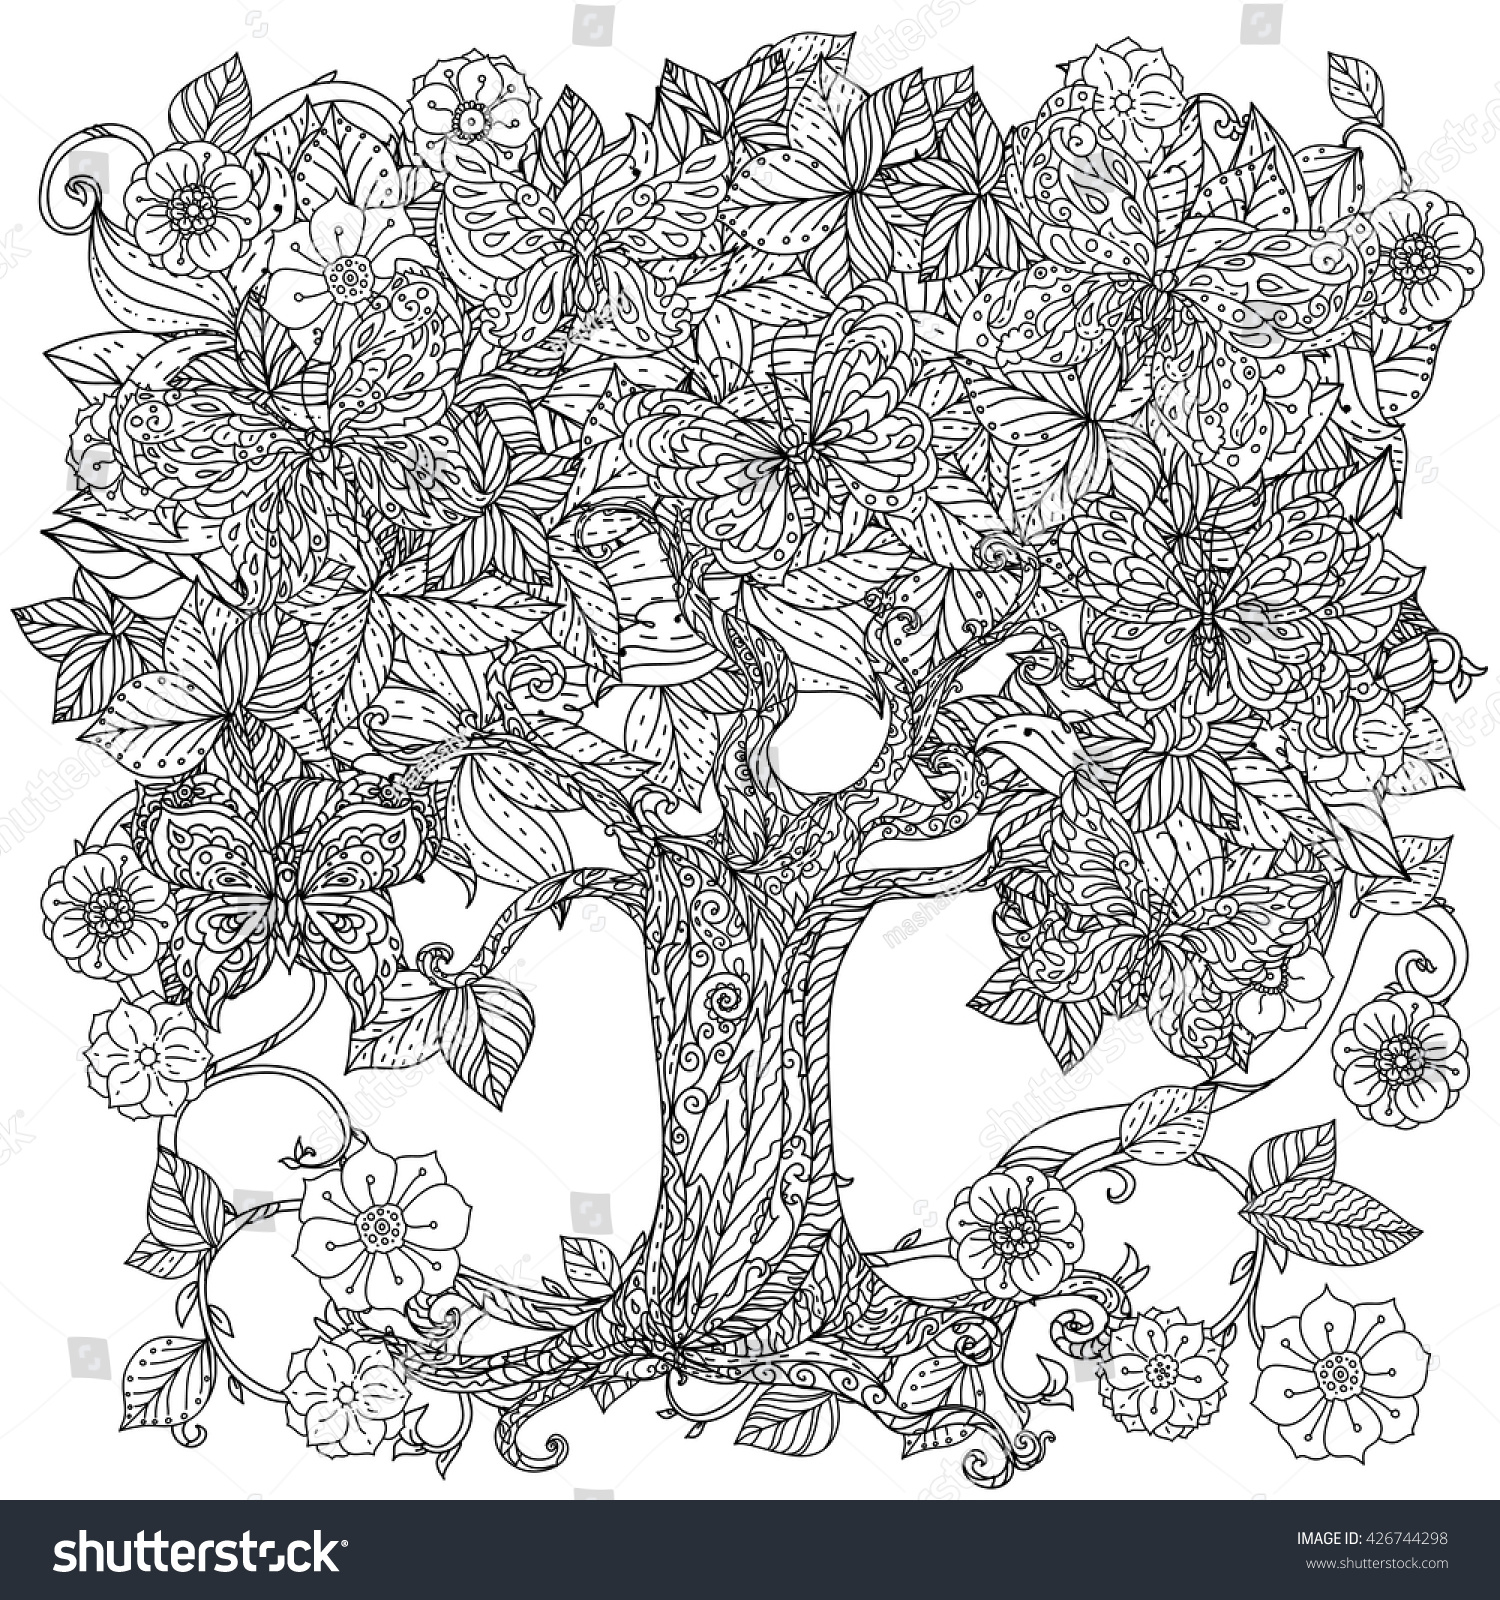 Uncoloured Tree And Butterfly For Adult Coloring Book In Famous Zen Art Therapy Antistress Style